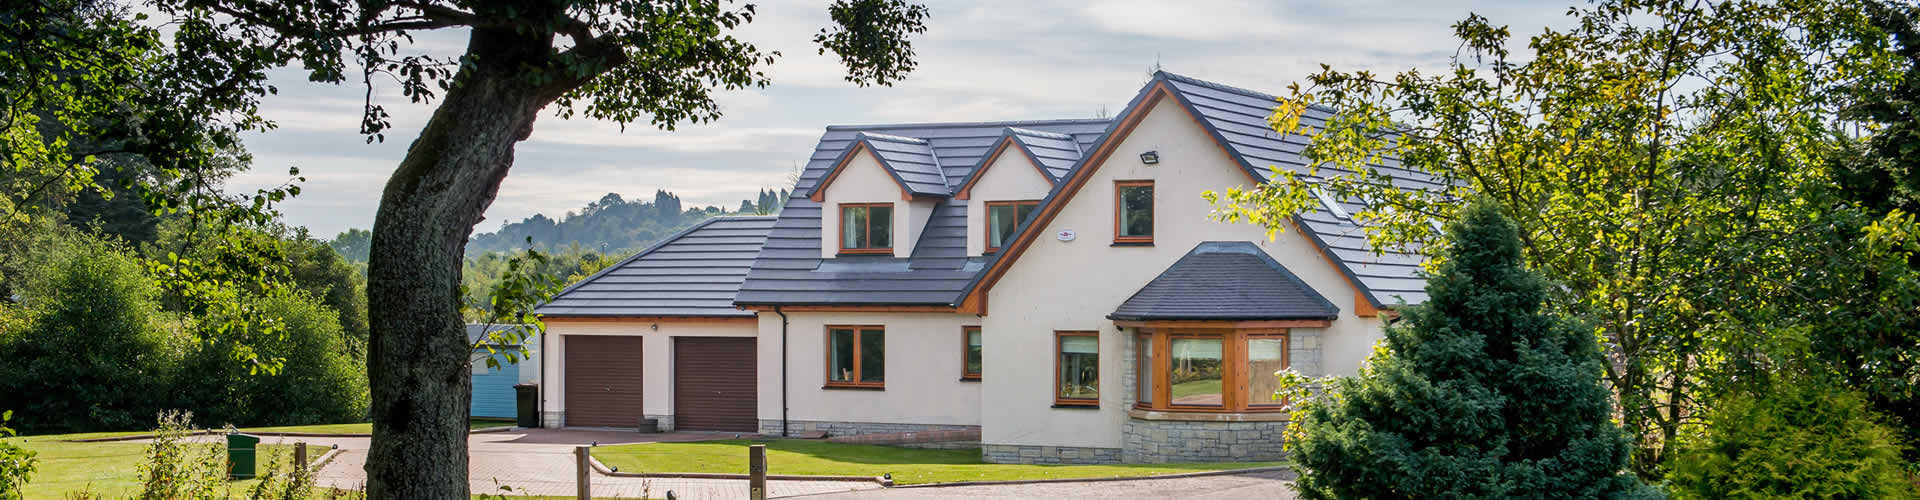 Housing developments in Perthshire and Aberdeenshire